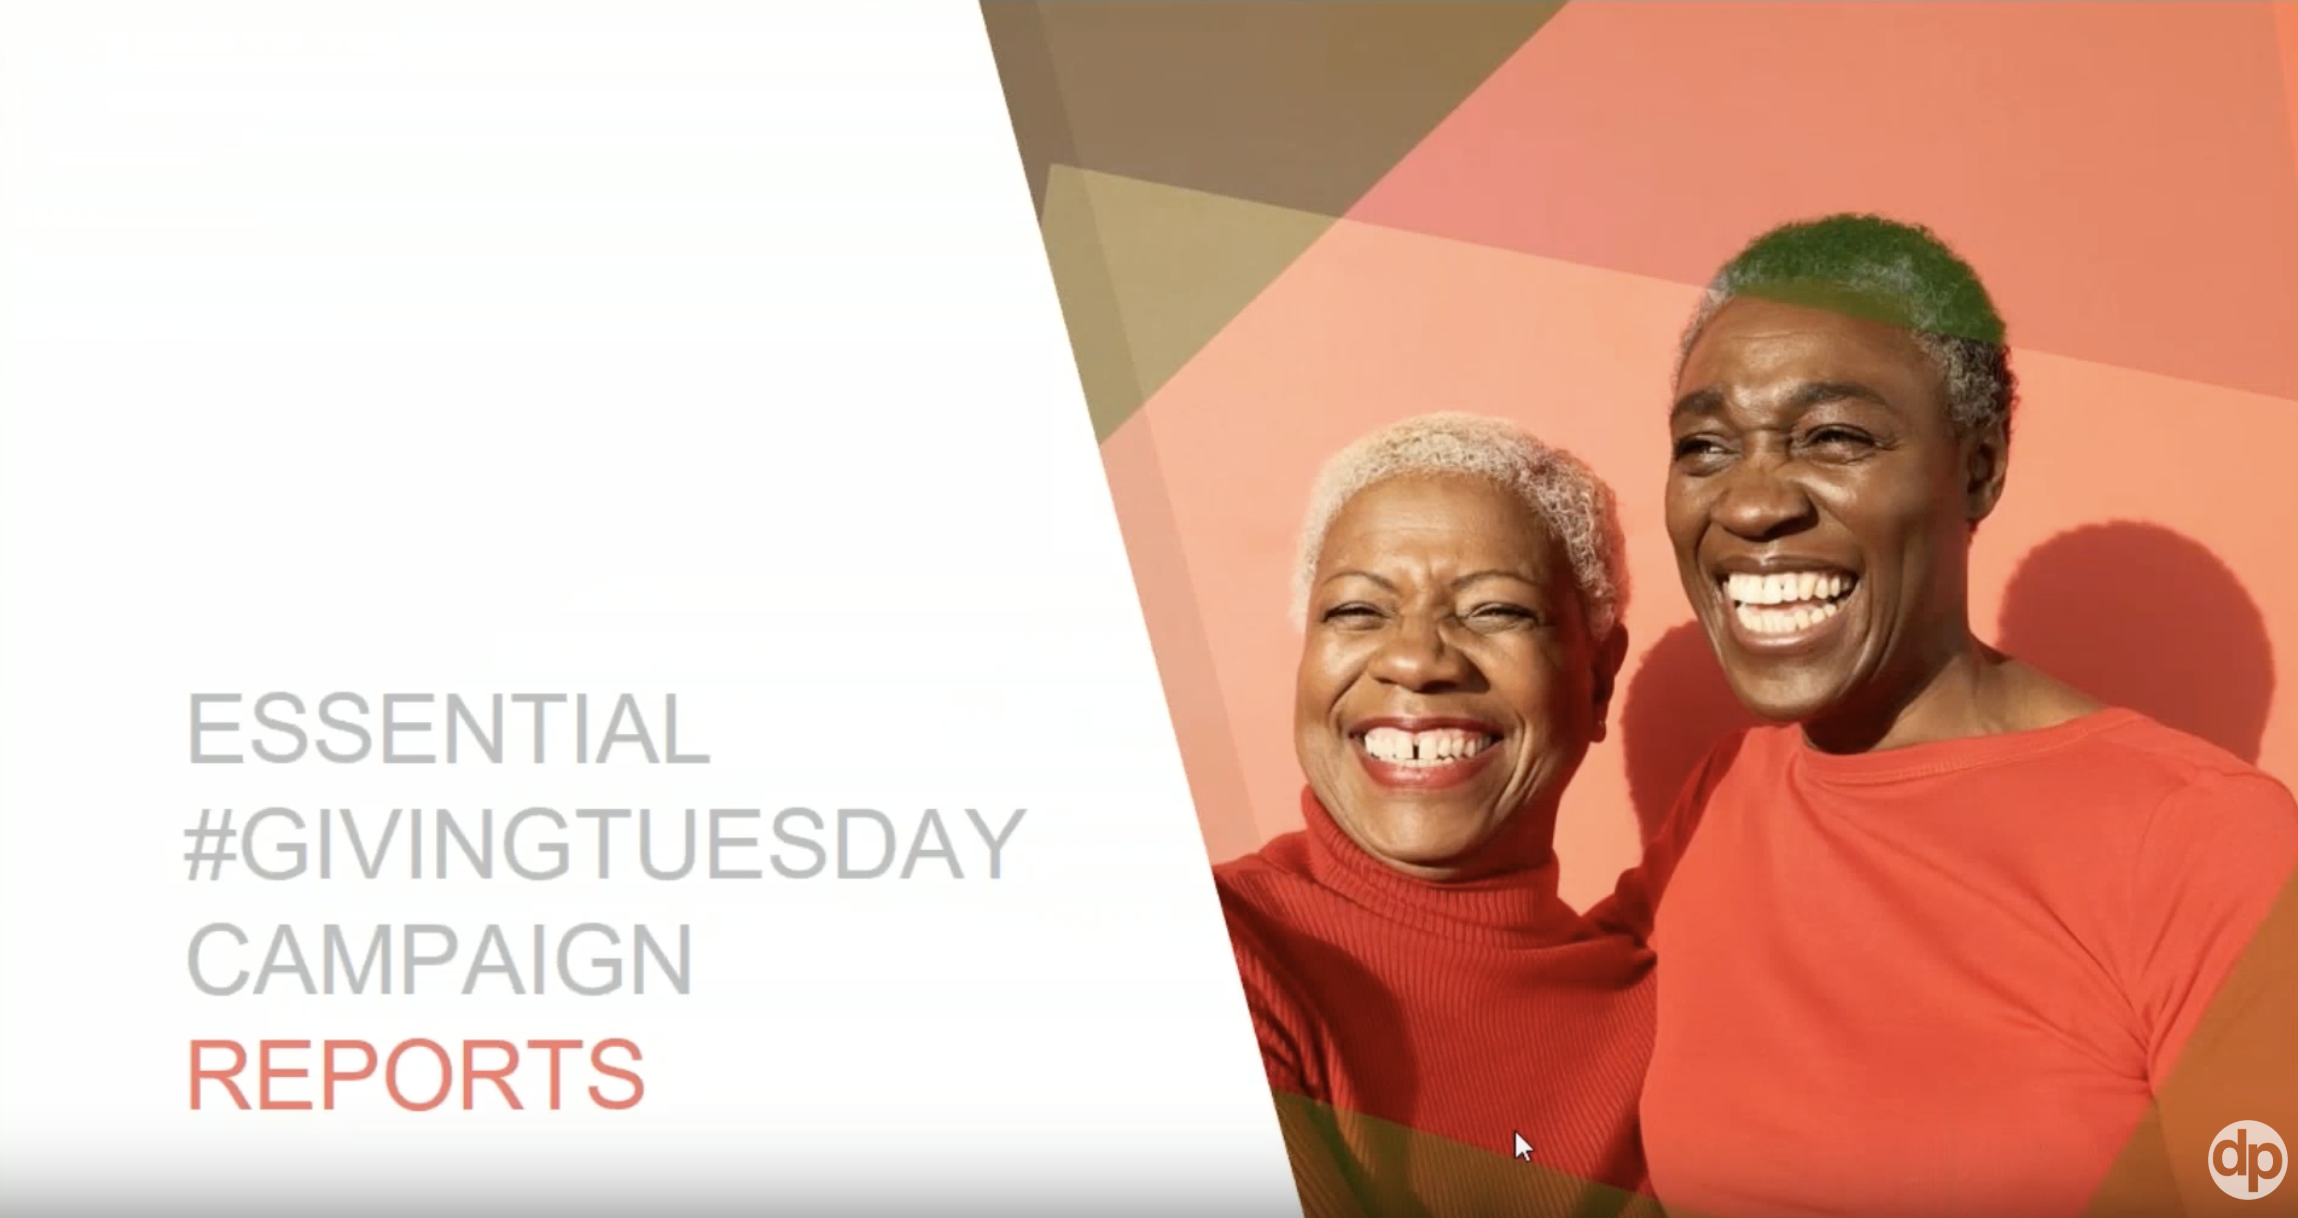 GivingTuesday Fundraising Campaign Reports Webinar